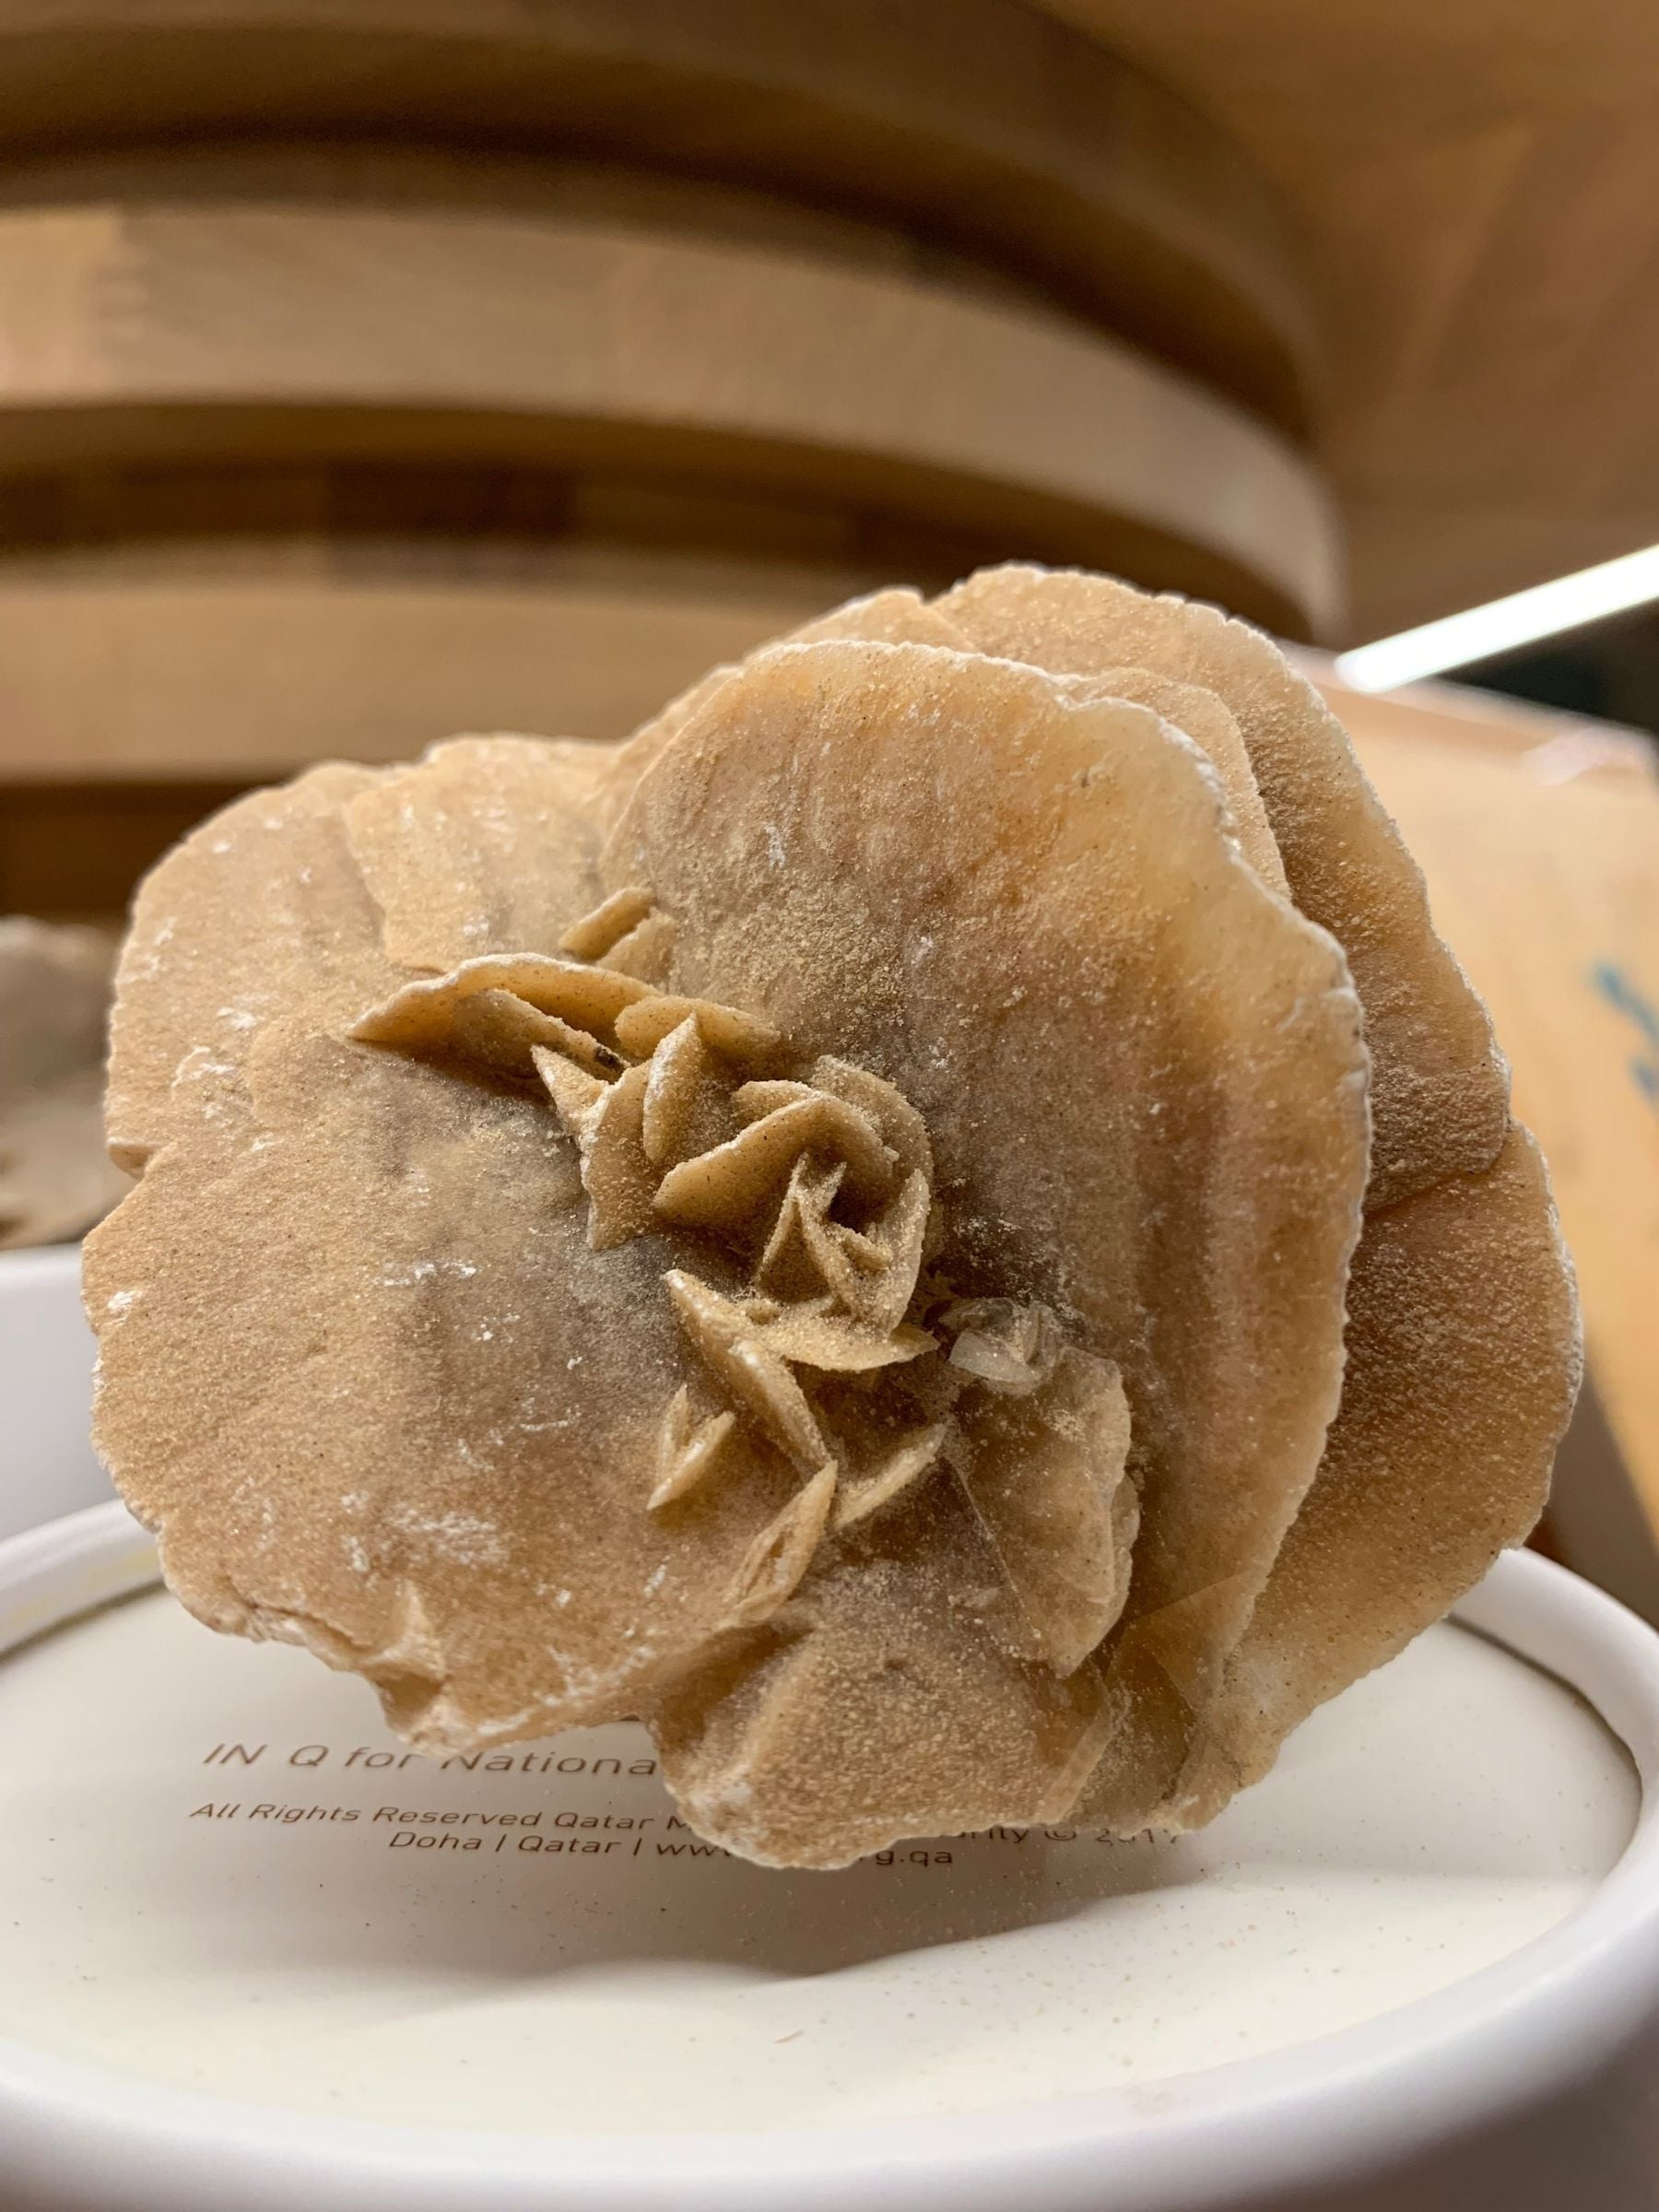 Replica of a desert rose at the National Museum of Qatar.